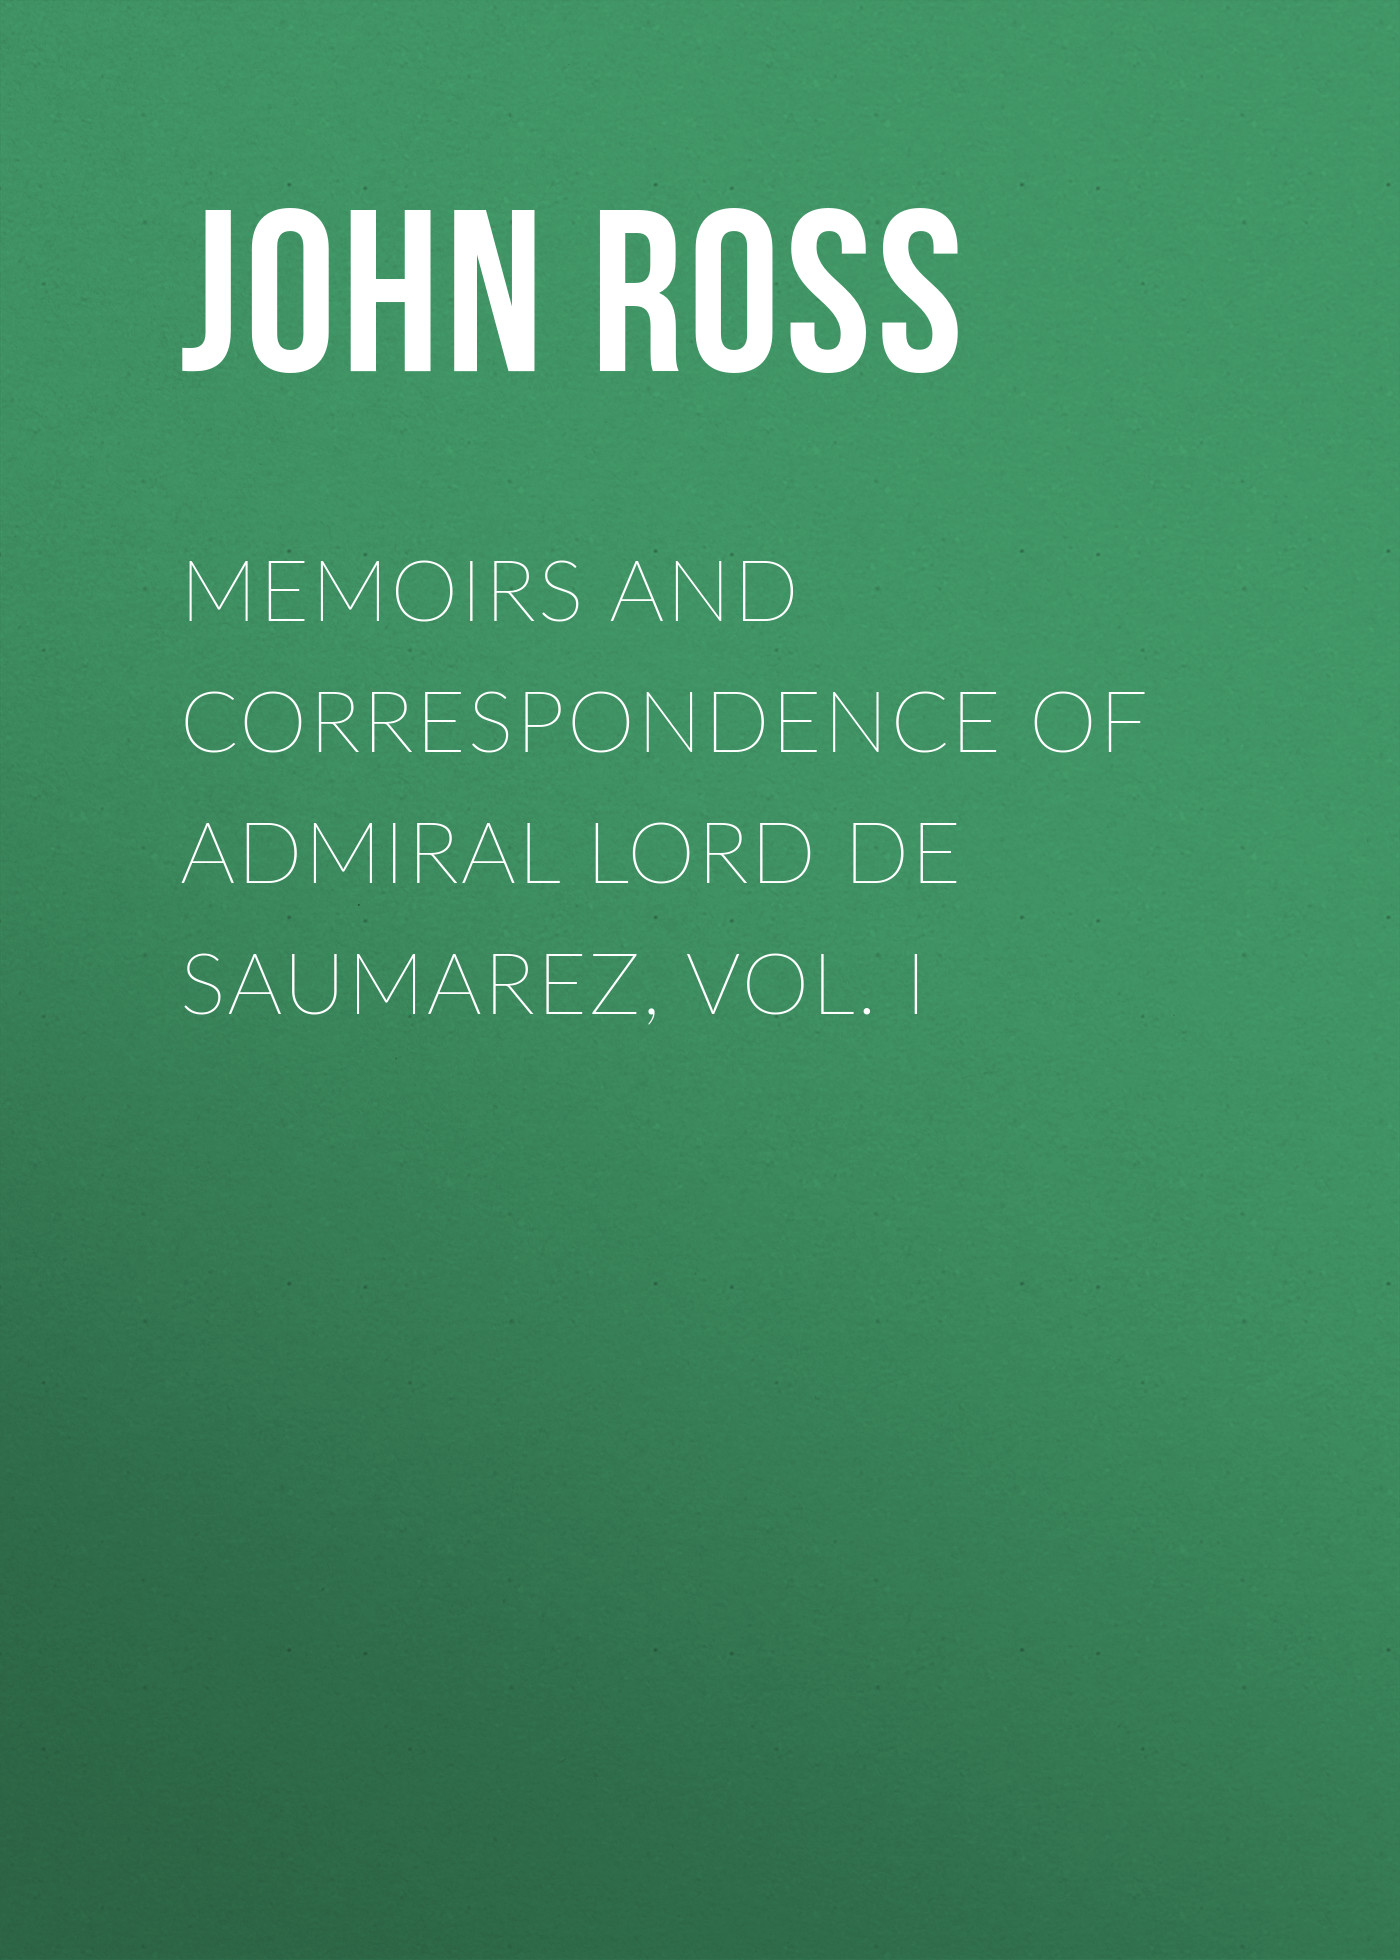 John Ross Memoirs and Correspondence of Admiral Lord de Saumarez, Vol. I doll house model toys role play elegant house furnishing warm time room children toys kids educational toys